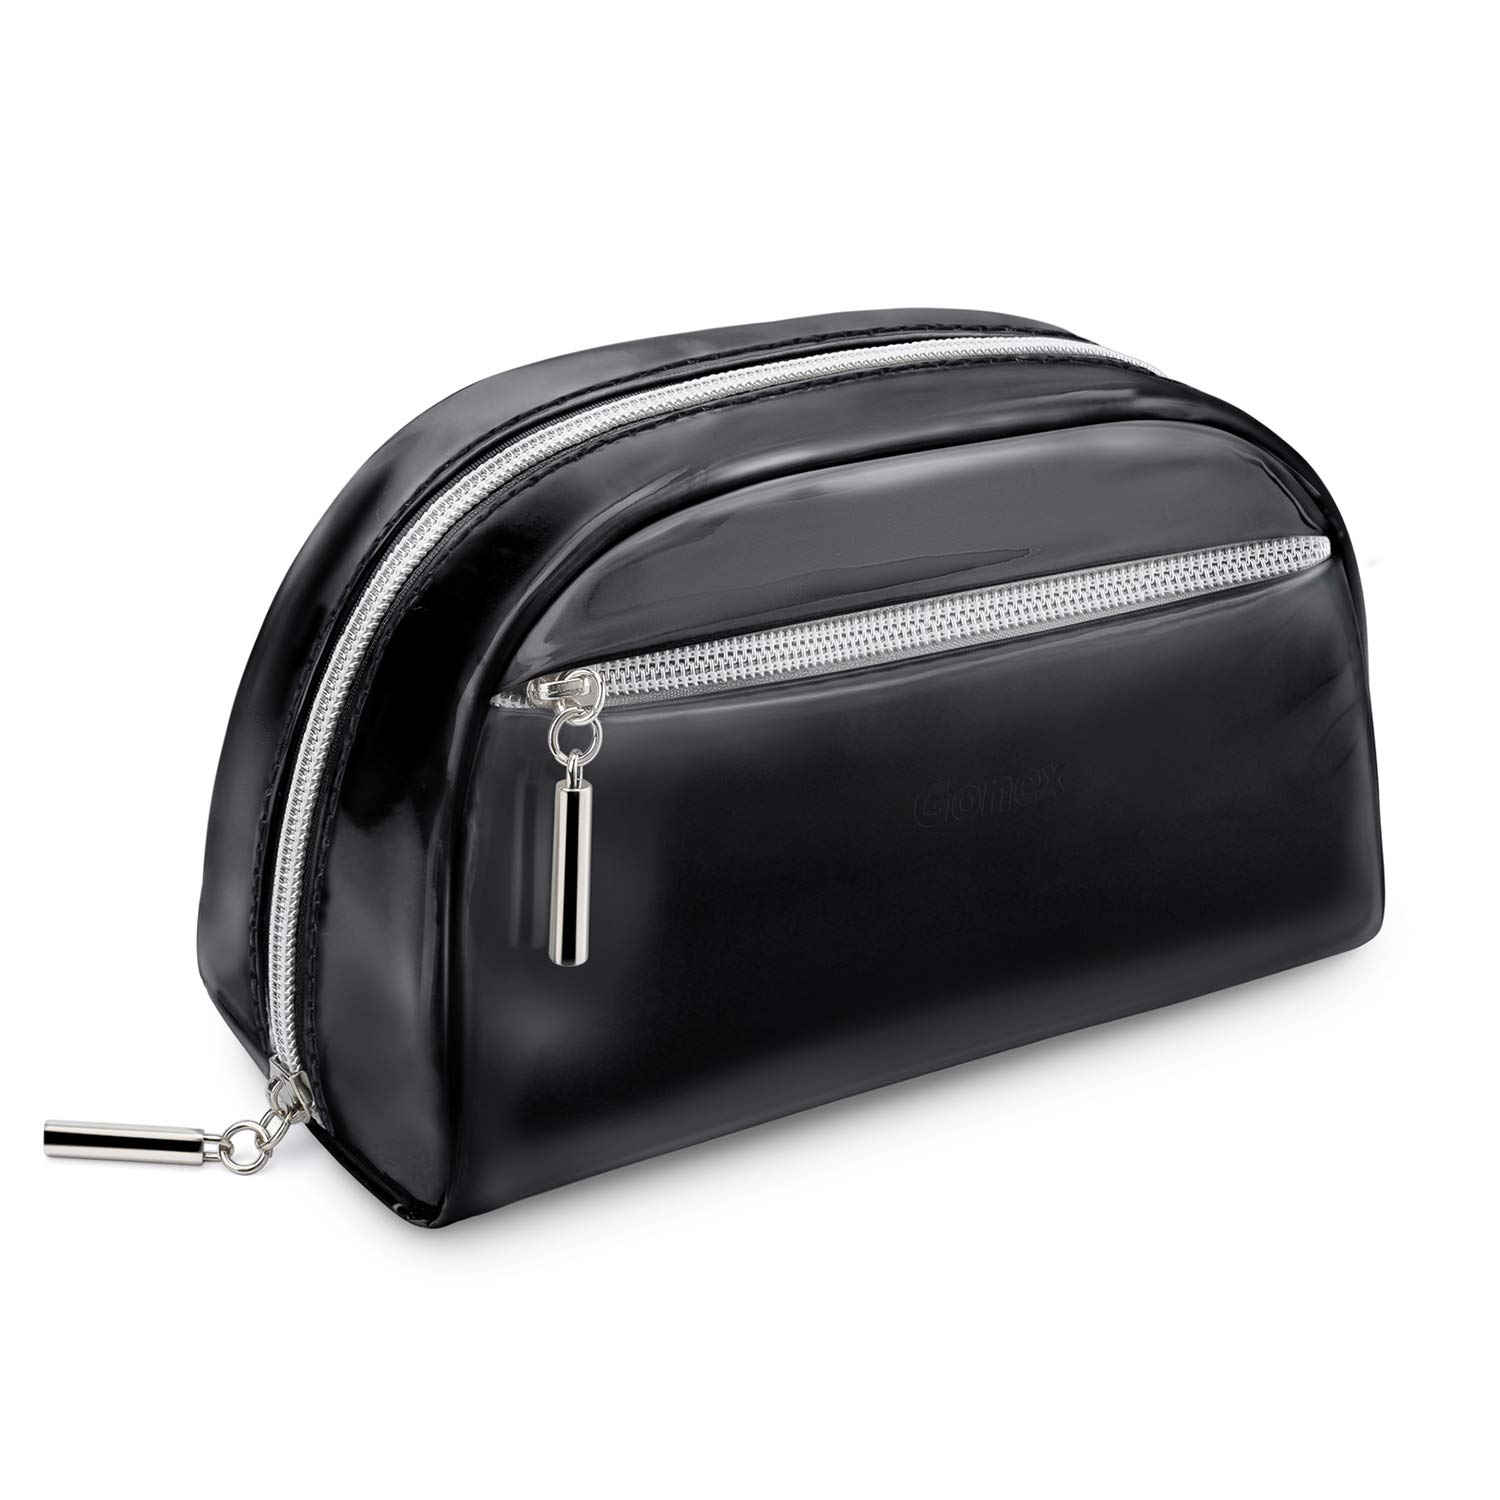 Gonex Small Makeup Bag for Purse Metallic Silver Cosmetics Bag PU Leather Travel Pouch for Women Girls Gifts Portable Water-Resistant Daily Storage Organzier, Black